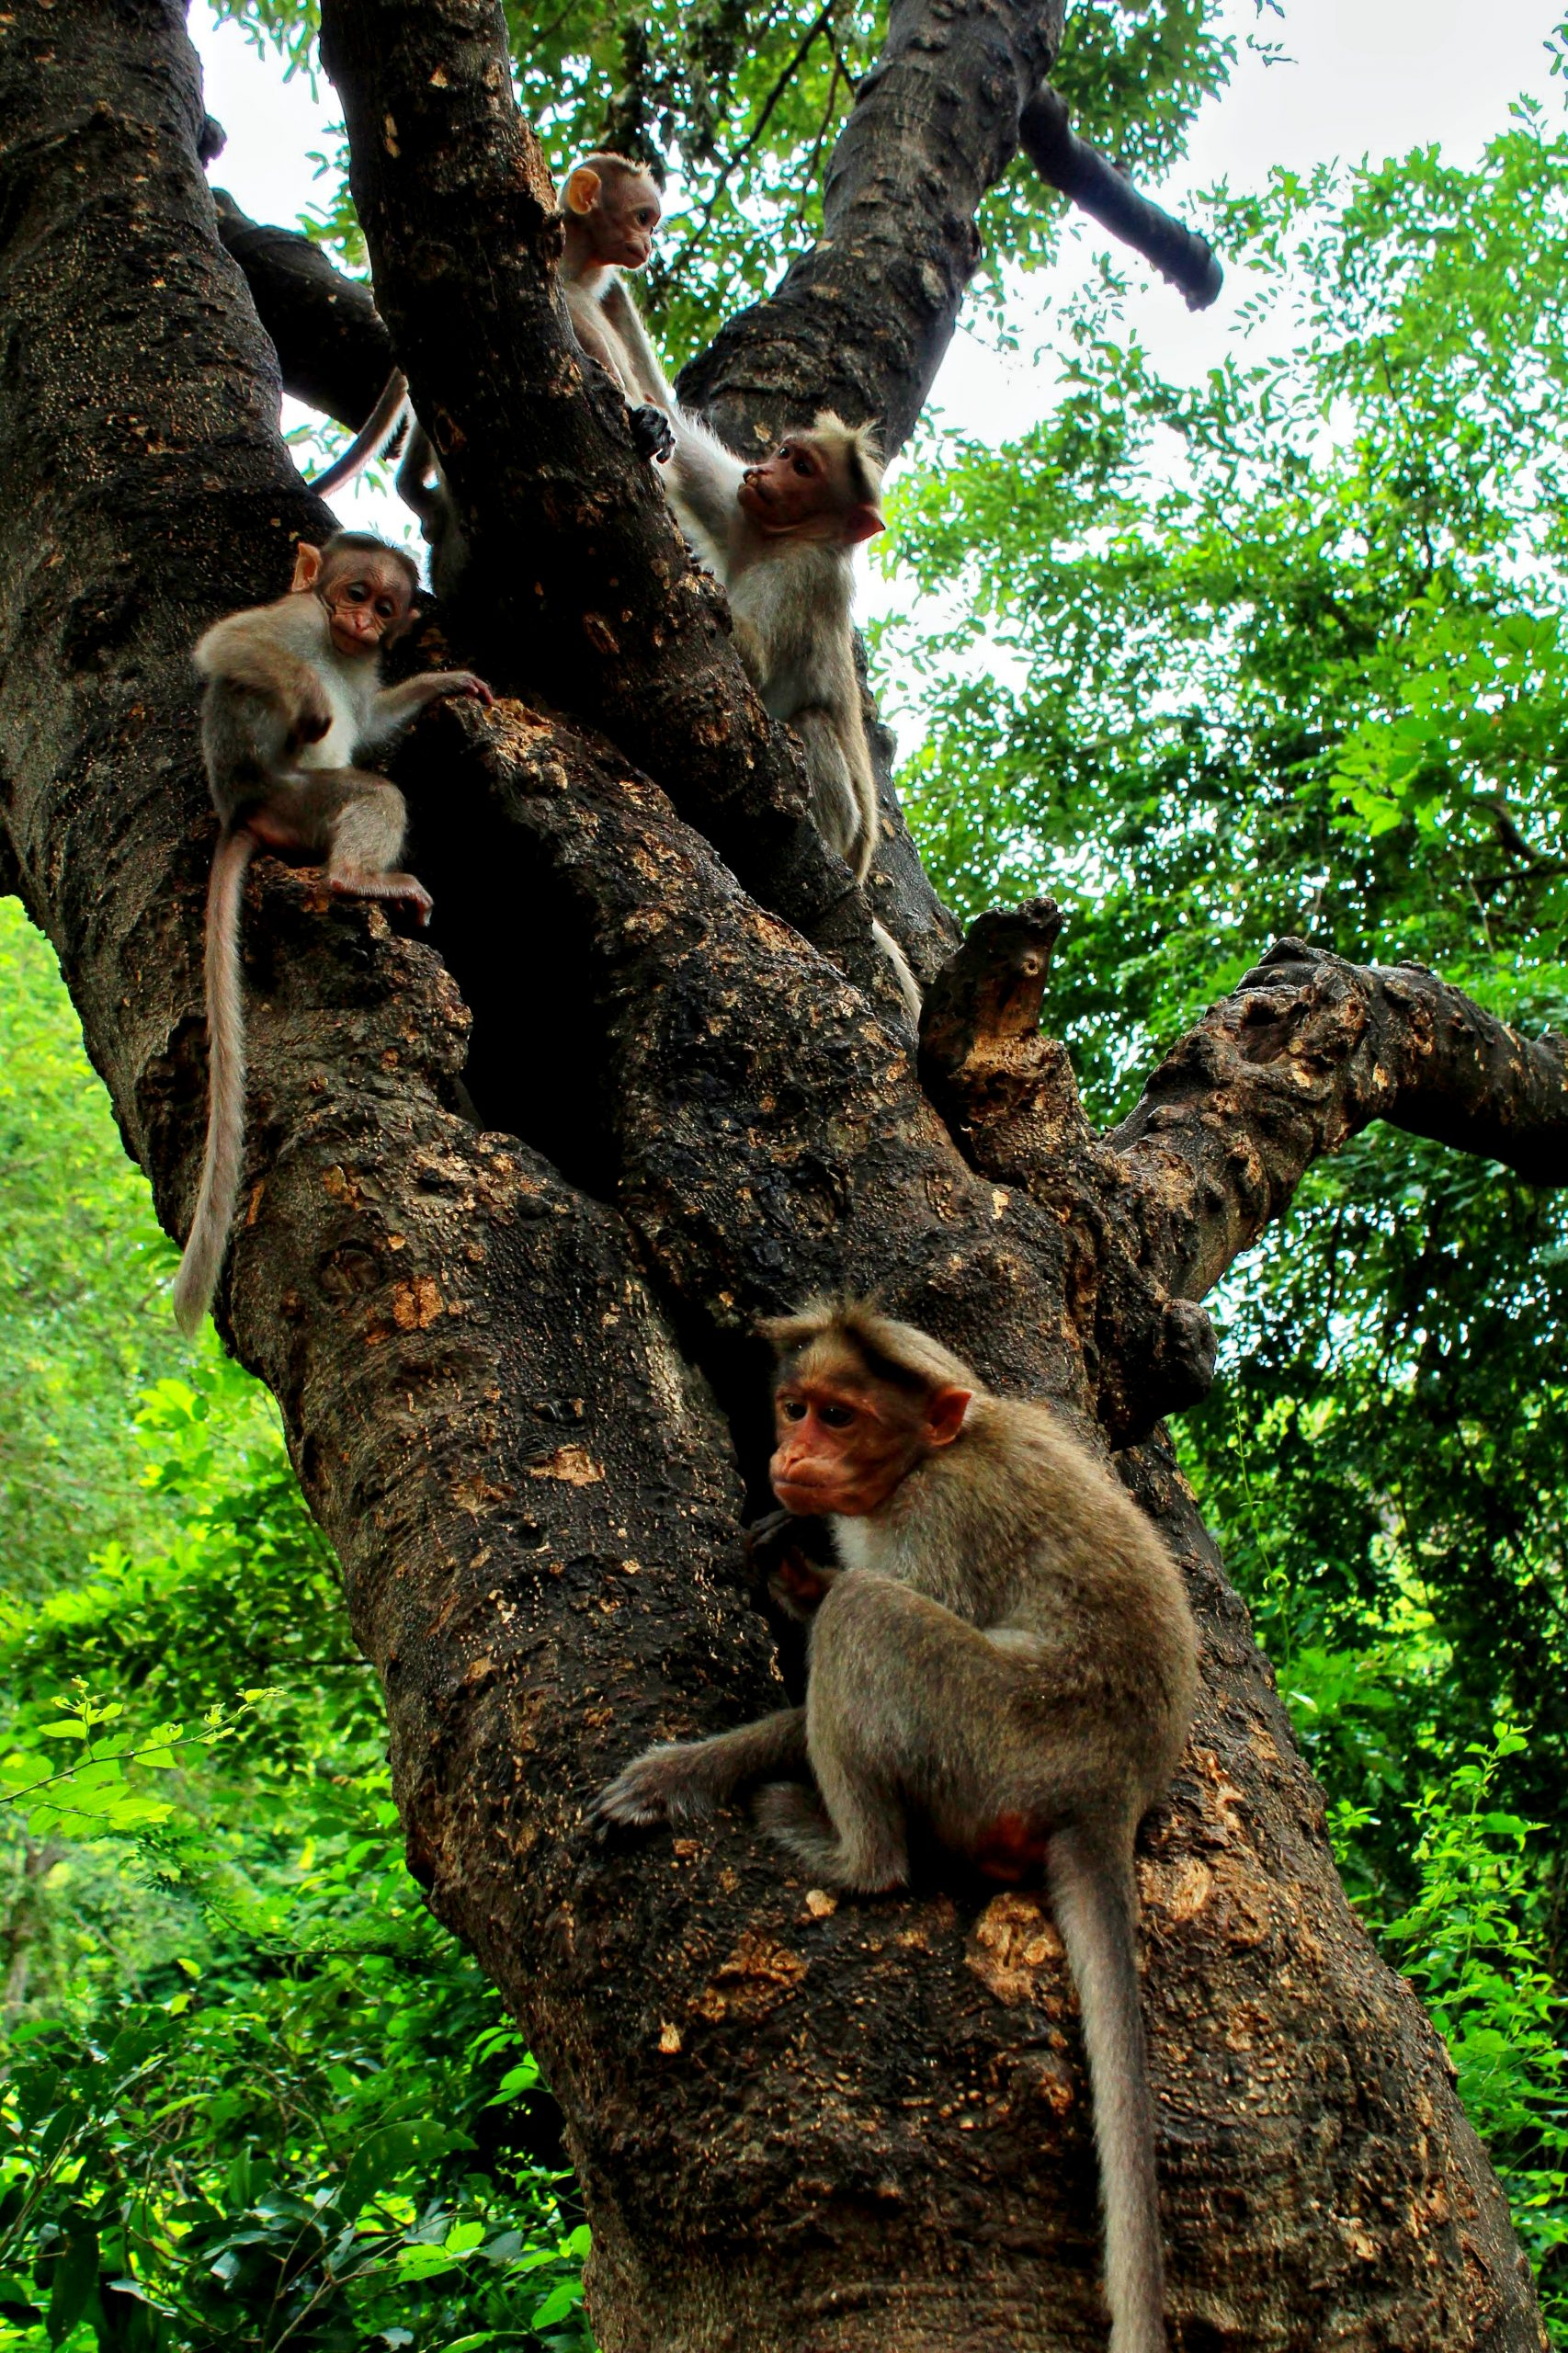 Monkeys on the tree in forest